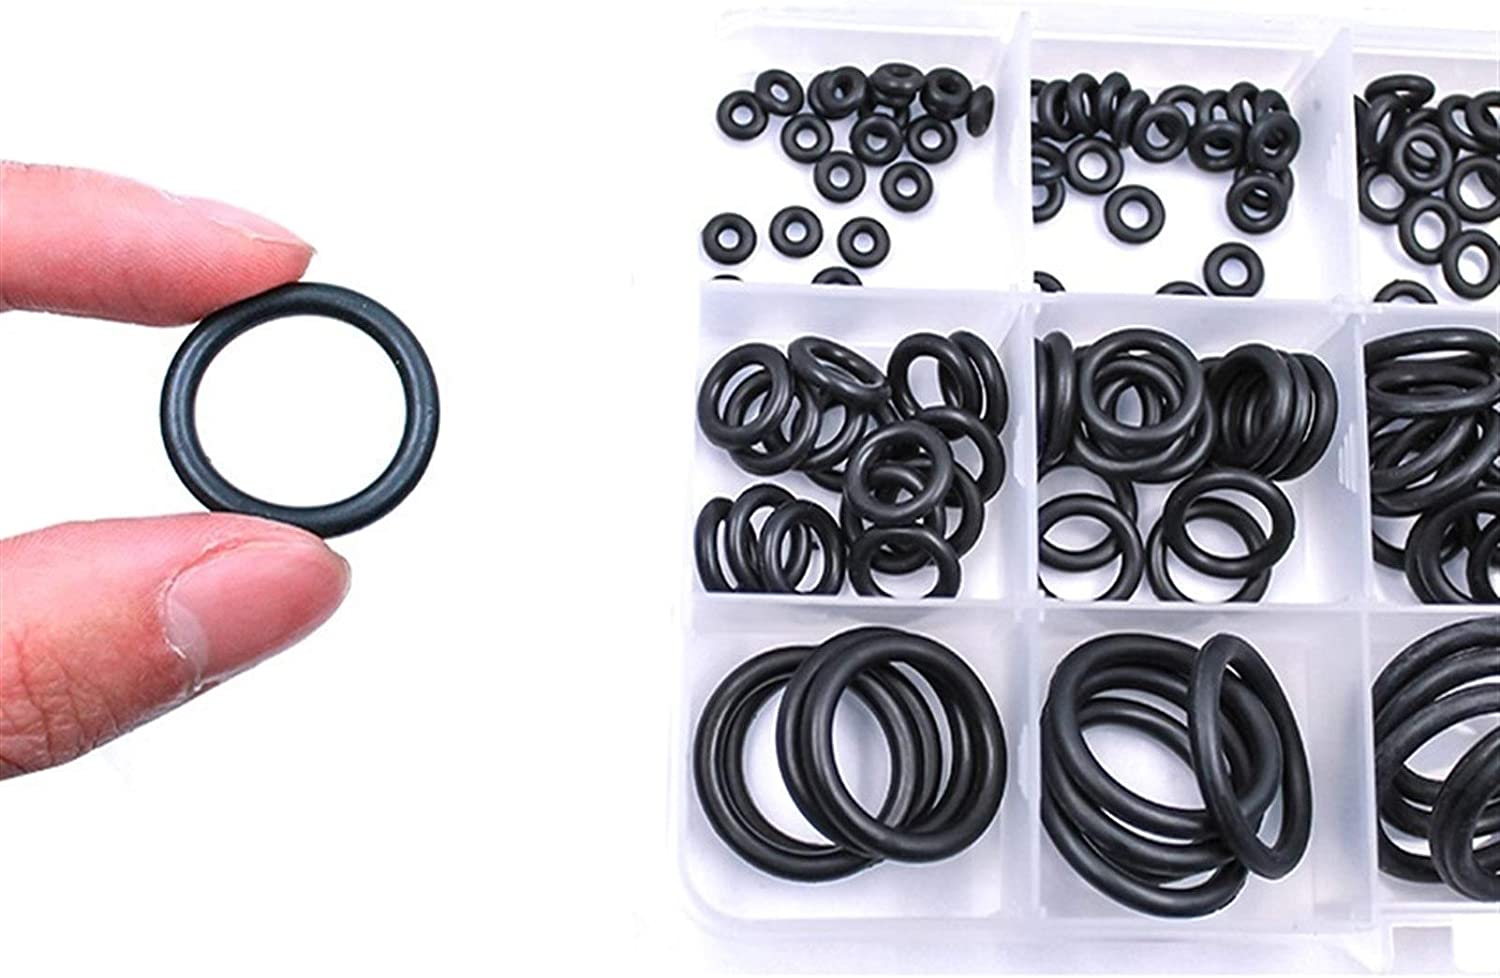 O Ring Assortment Size : 2.4 NBR Sealing O-Rings Nitrile Washer O-Ring Set Assortment Kit Set Box Tools for Factories and Homes Thickness 1.5//2//2.4//3//1.8//2.65mm O Rings Rubber O Ring Seal